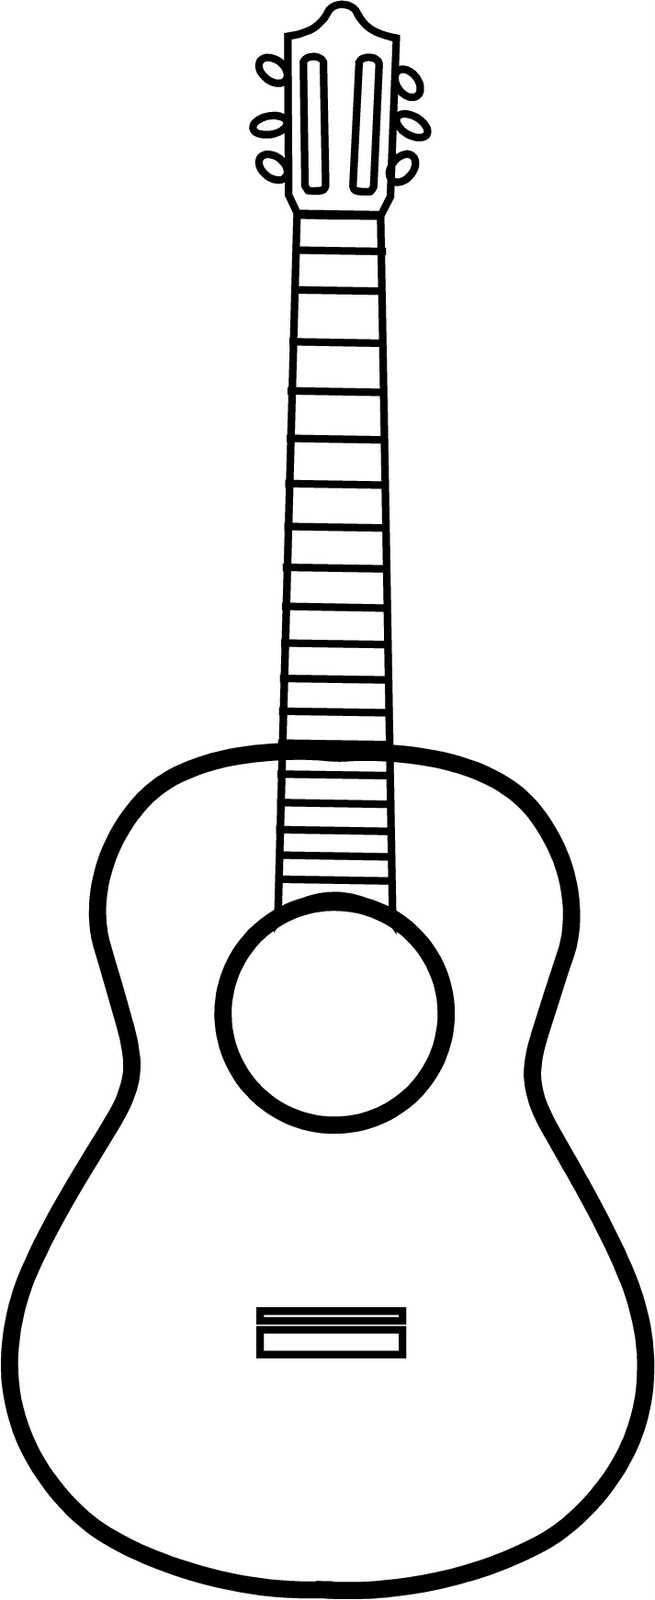 Guitar line drawing clipart best for Guitar cut out template